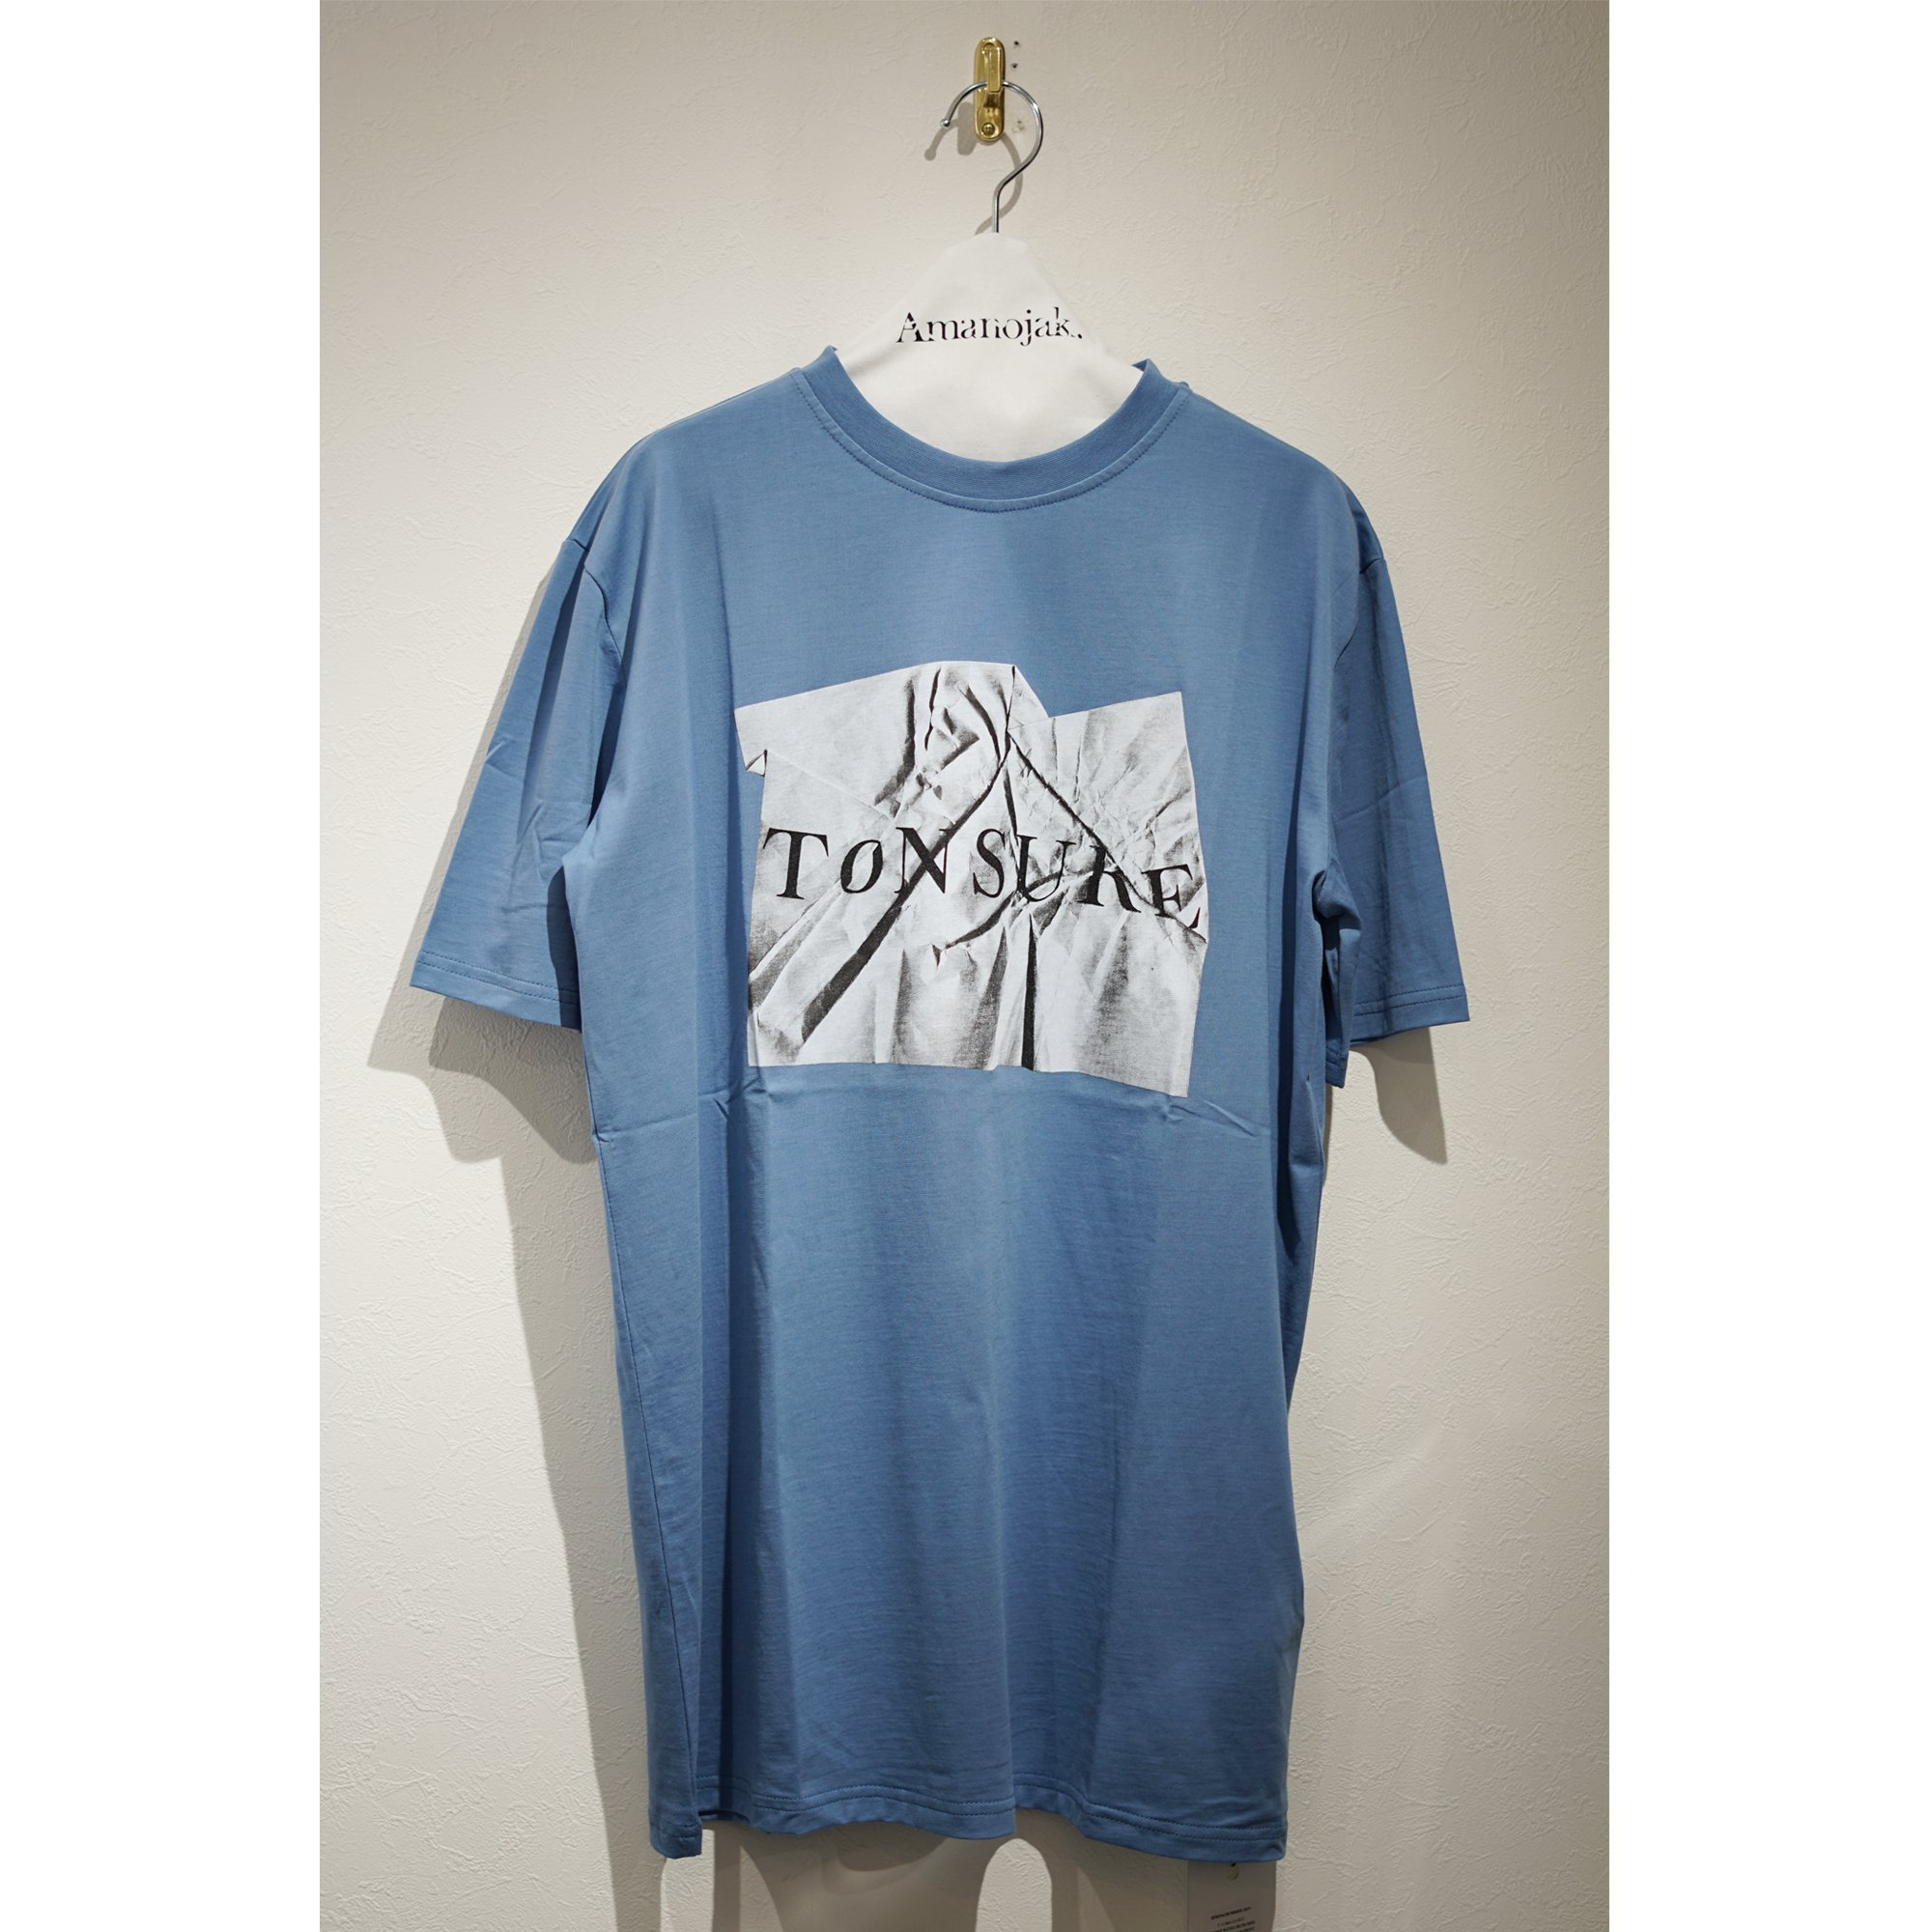 TONSURE-LOGO T-shirts with CRUNCHED A4 LIGHT BLUE